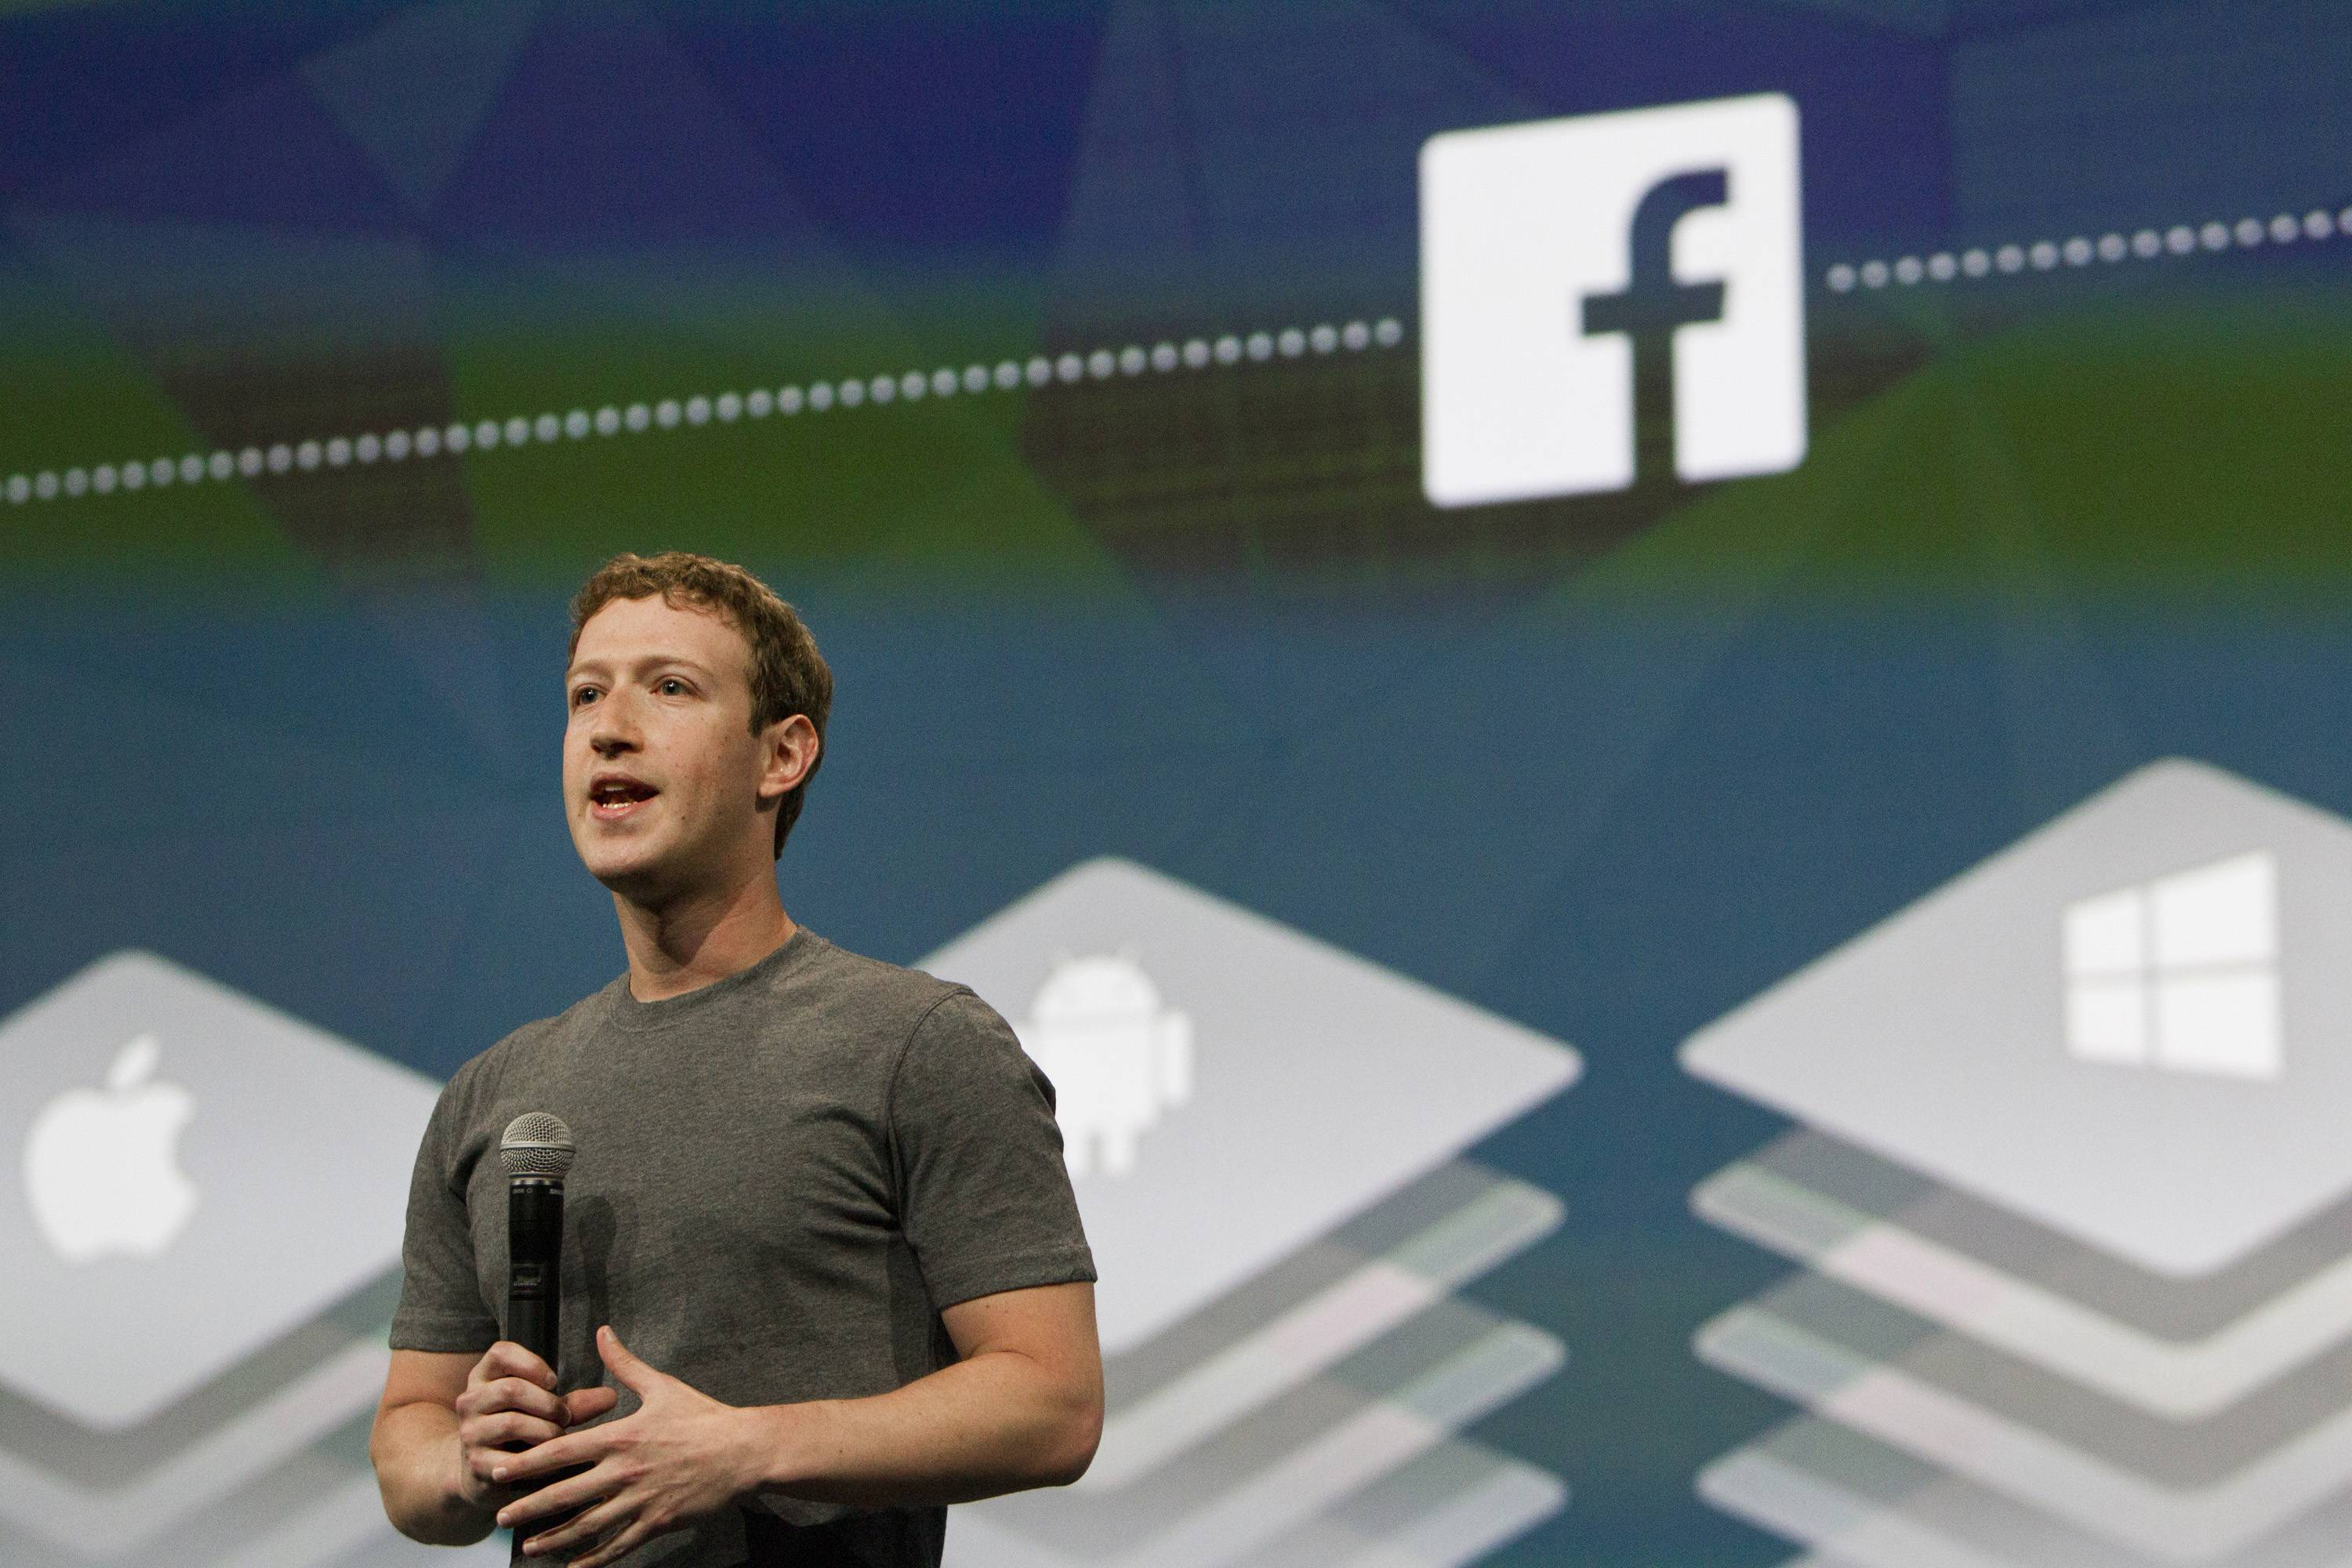 Mark Zuckerberg, chief executive officer of Facebook Inc., speaks during the Facebook F8 Developers Conference in San Francisco, California, U.S., on Wednesday, April 30, 2014.